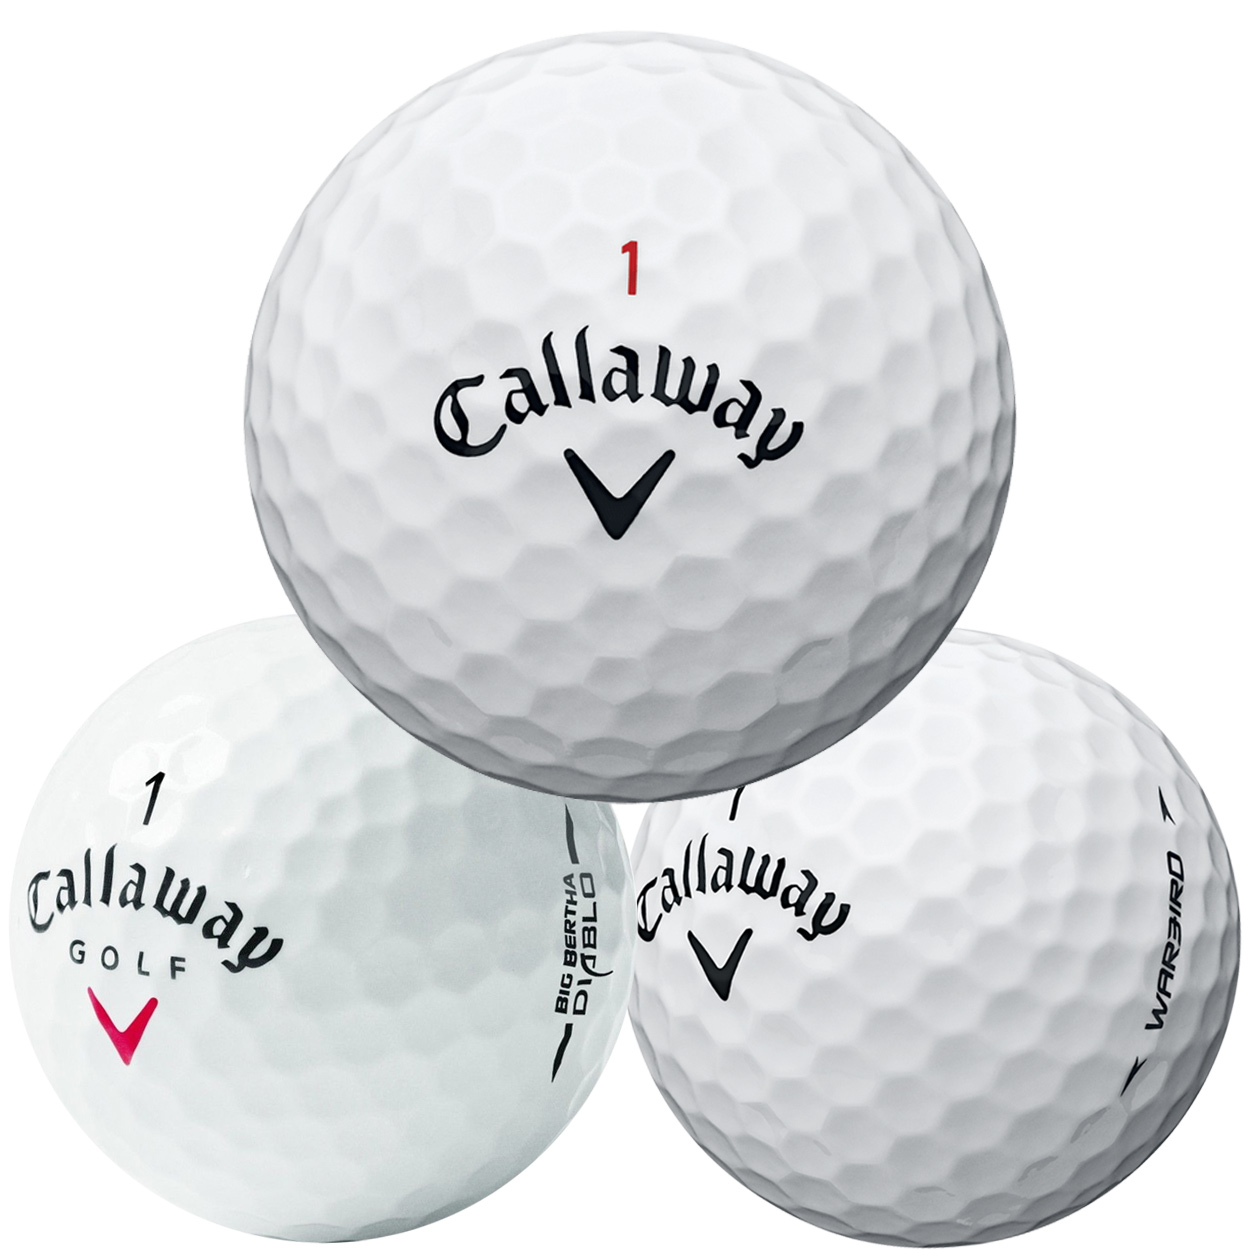 Callaway Mix Recycled Golf Balls, (36) 3-Dozen